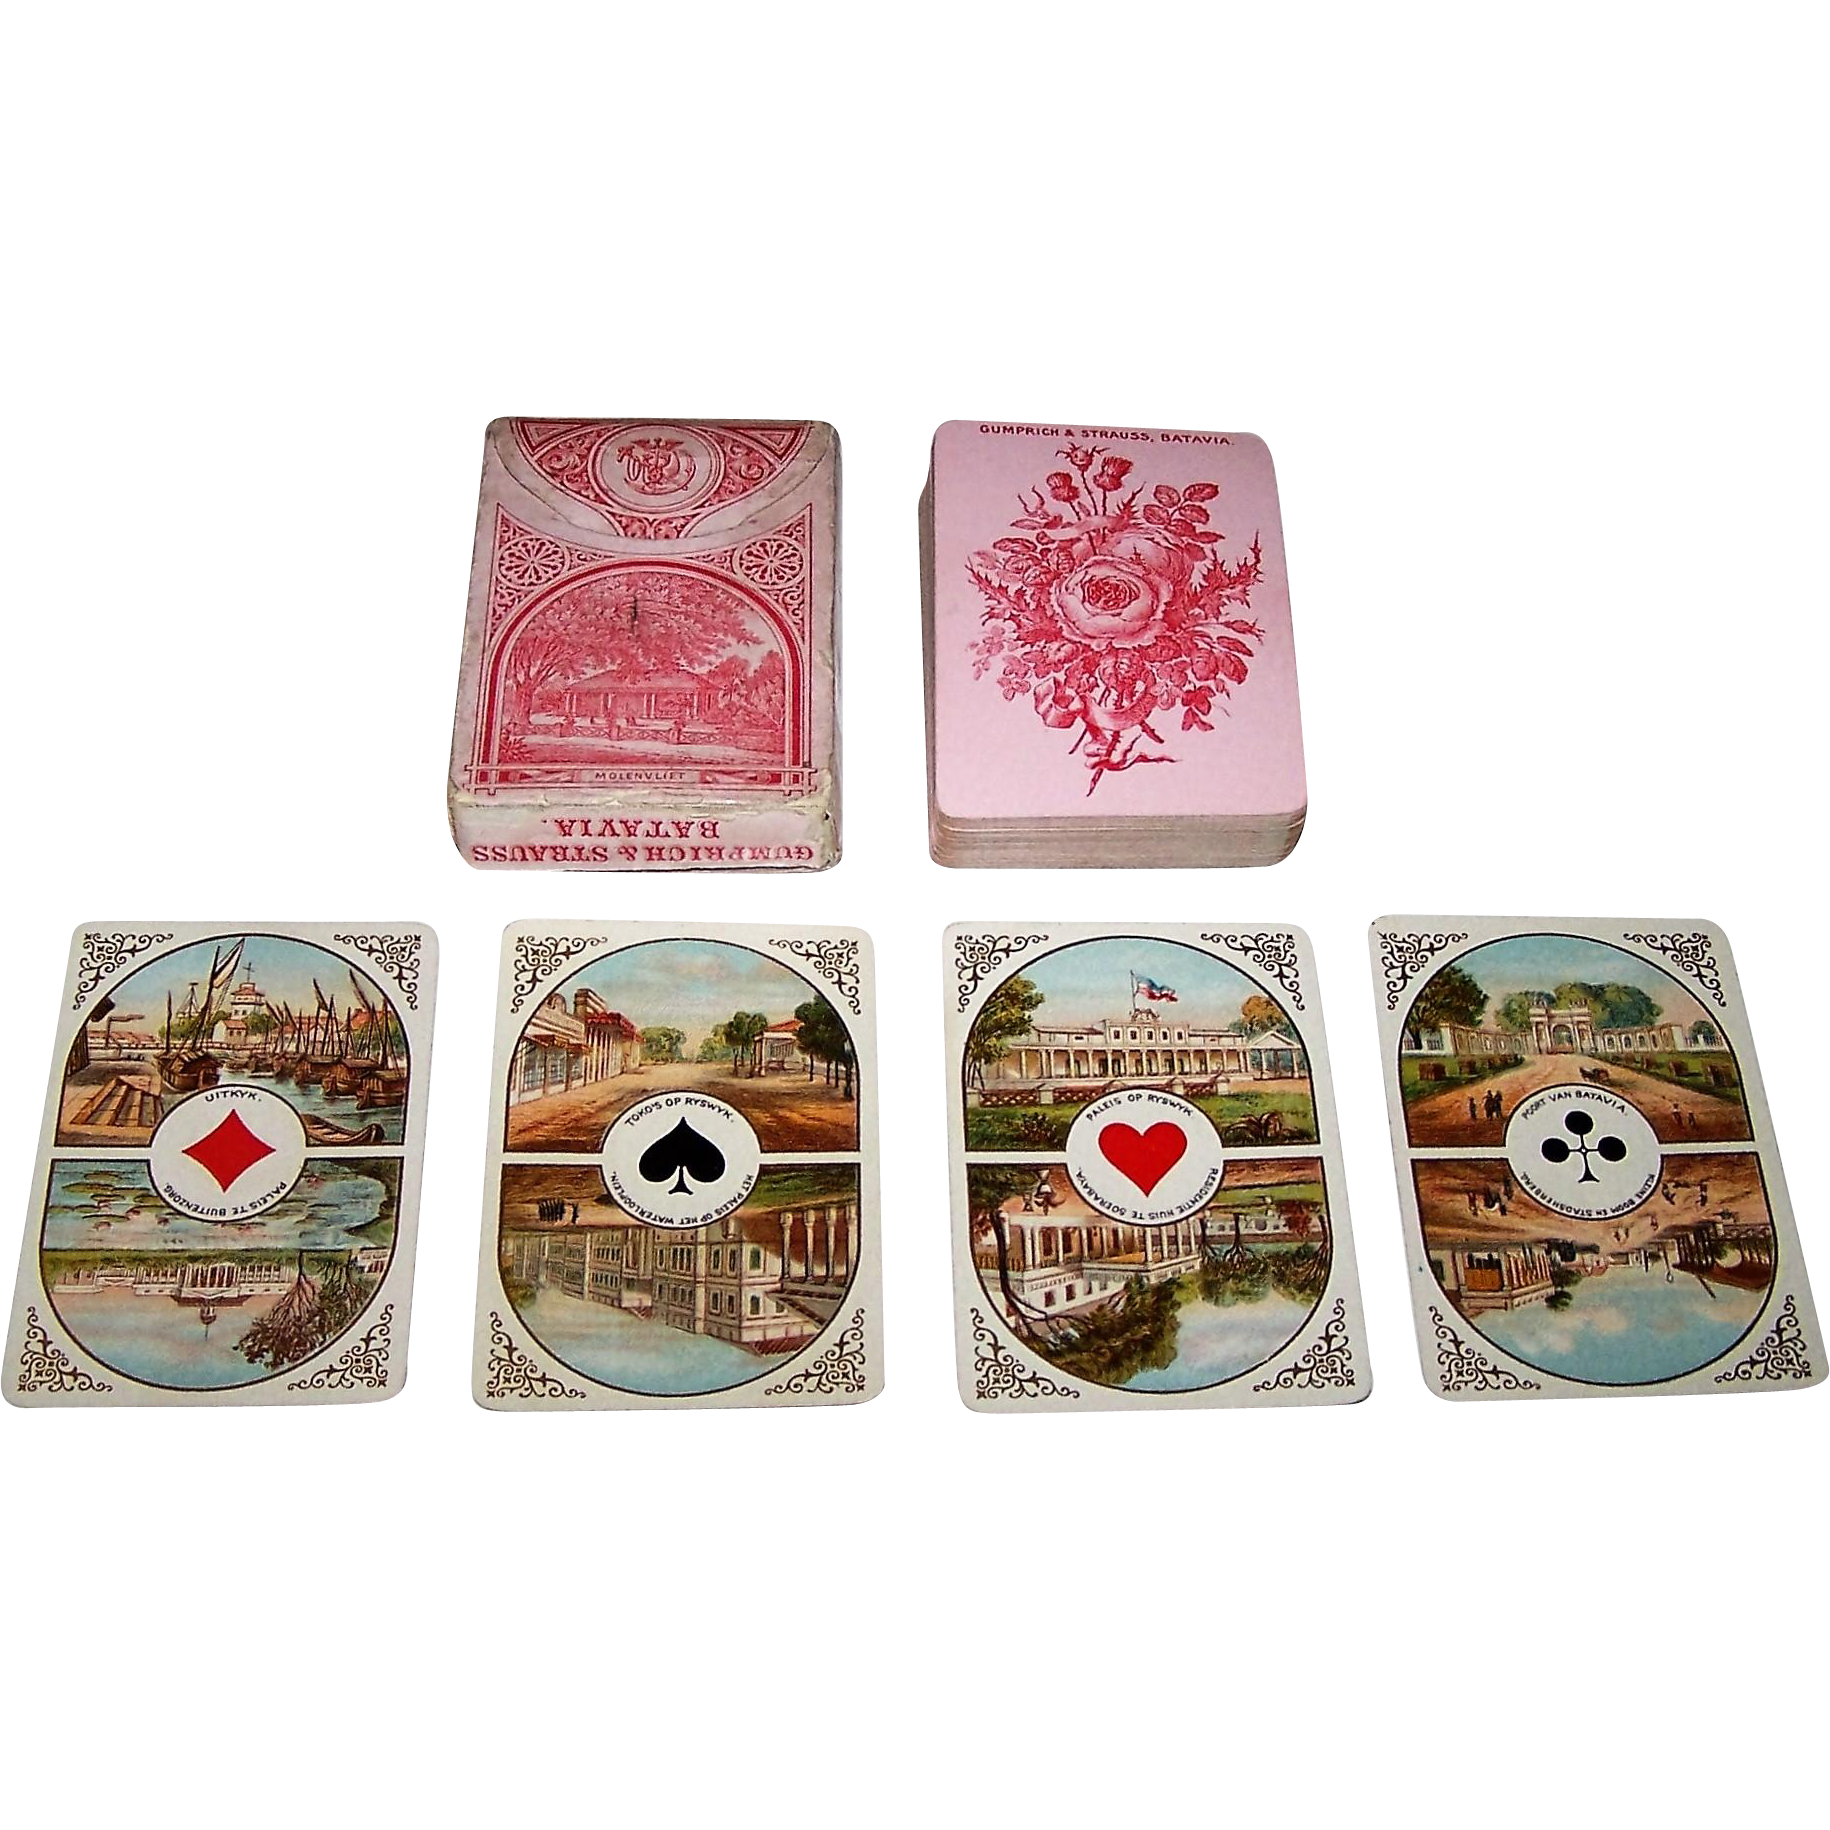 "Dondorf No. 17 ""Java Speelkaarten"" Playing Cards, Gumprich & Strauss Variant 2, c.1879"